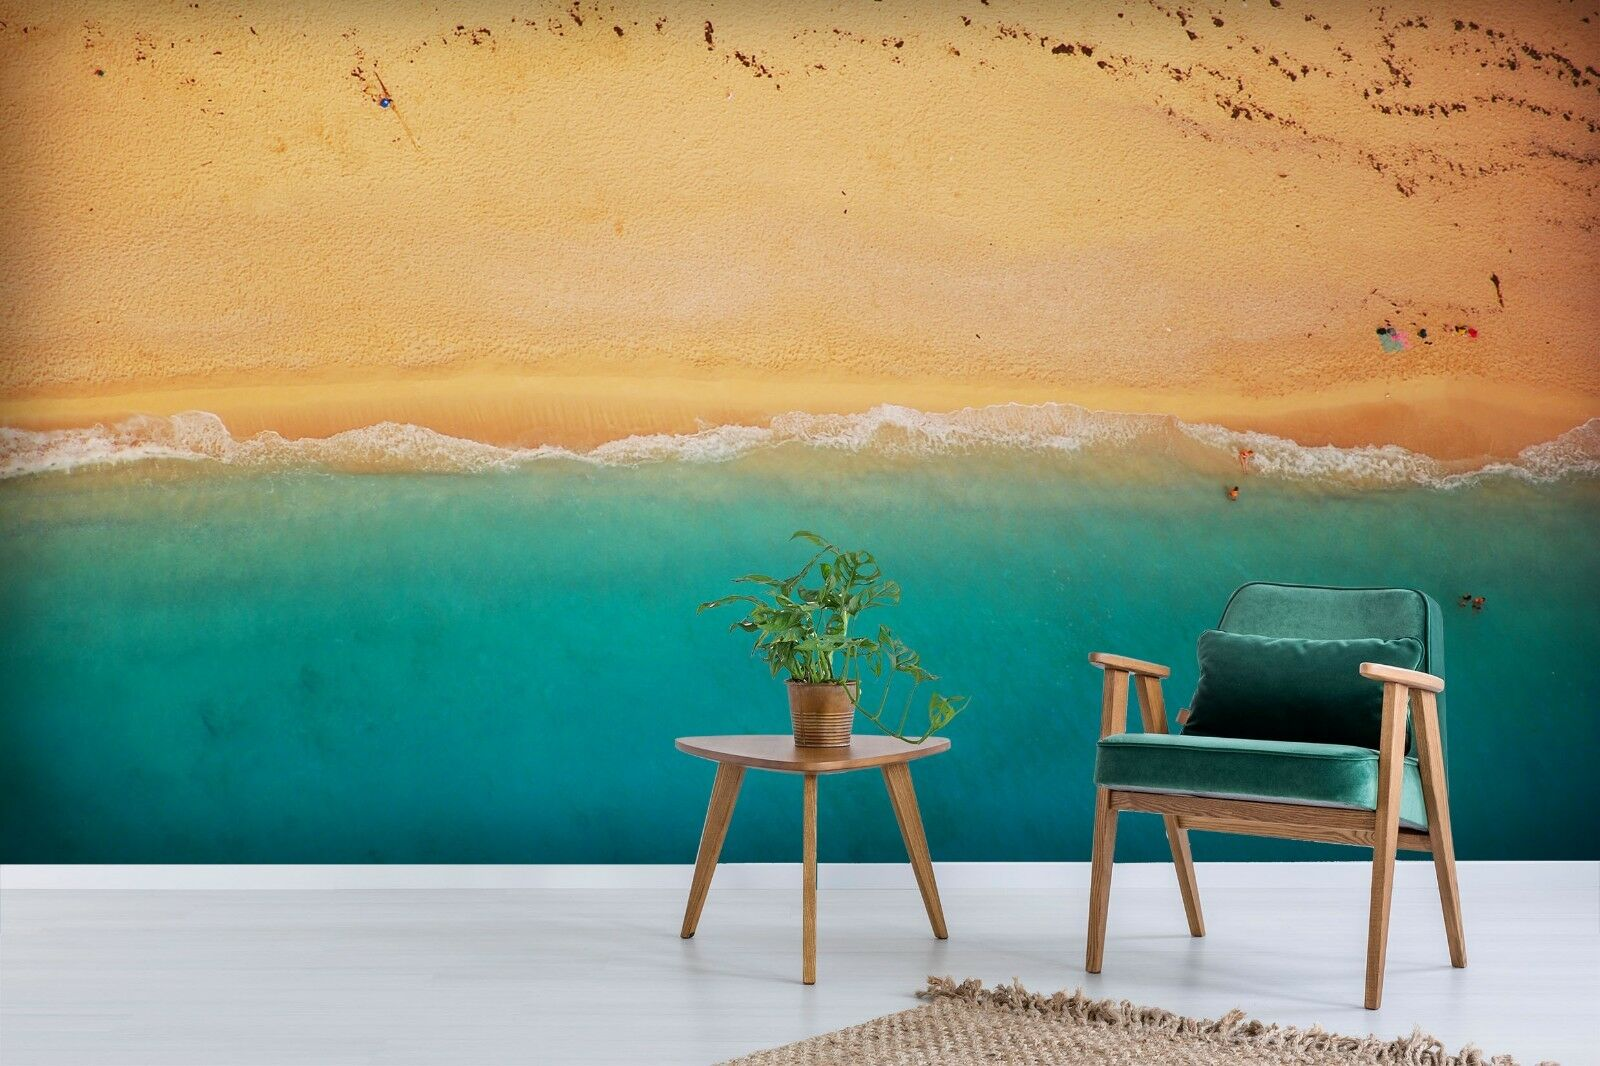 3D Sand Beach Waves 5 Wallpaper Murals Wall Print Wallpaper Mural AJ WALL AU